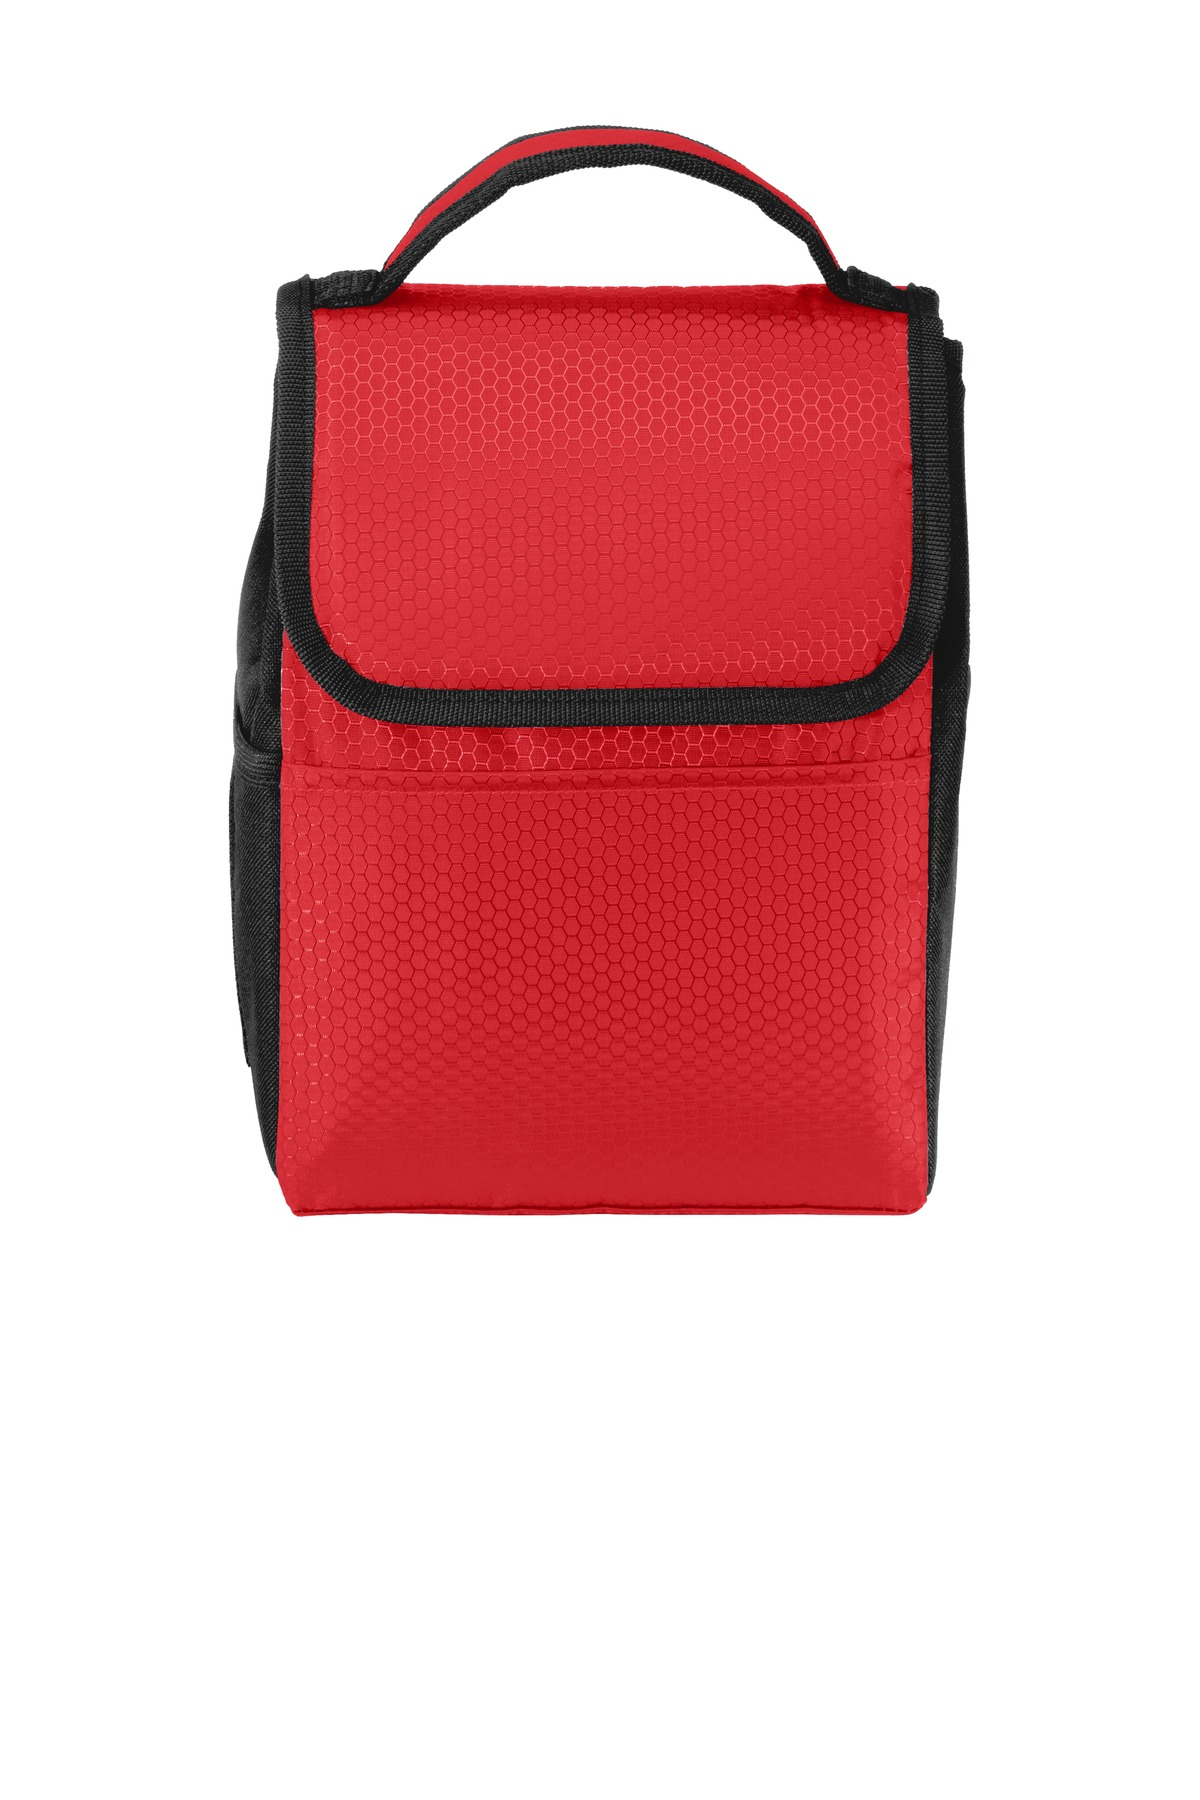 Port Authority ®  Lunch Bag Cooler. BG500 - Red/ Black